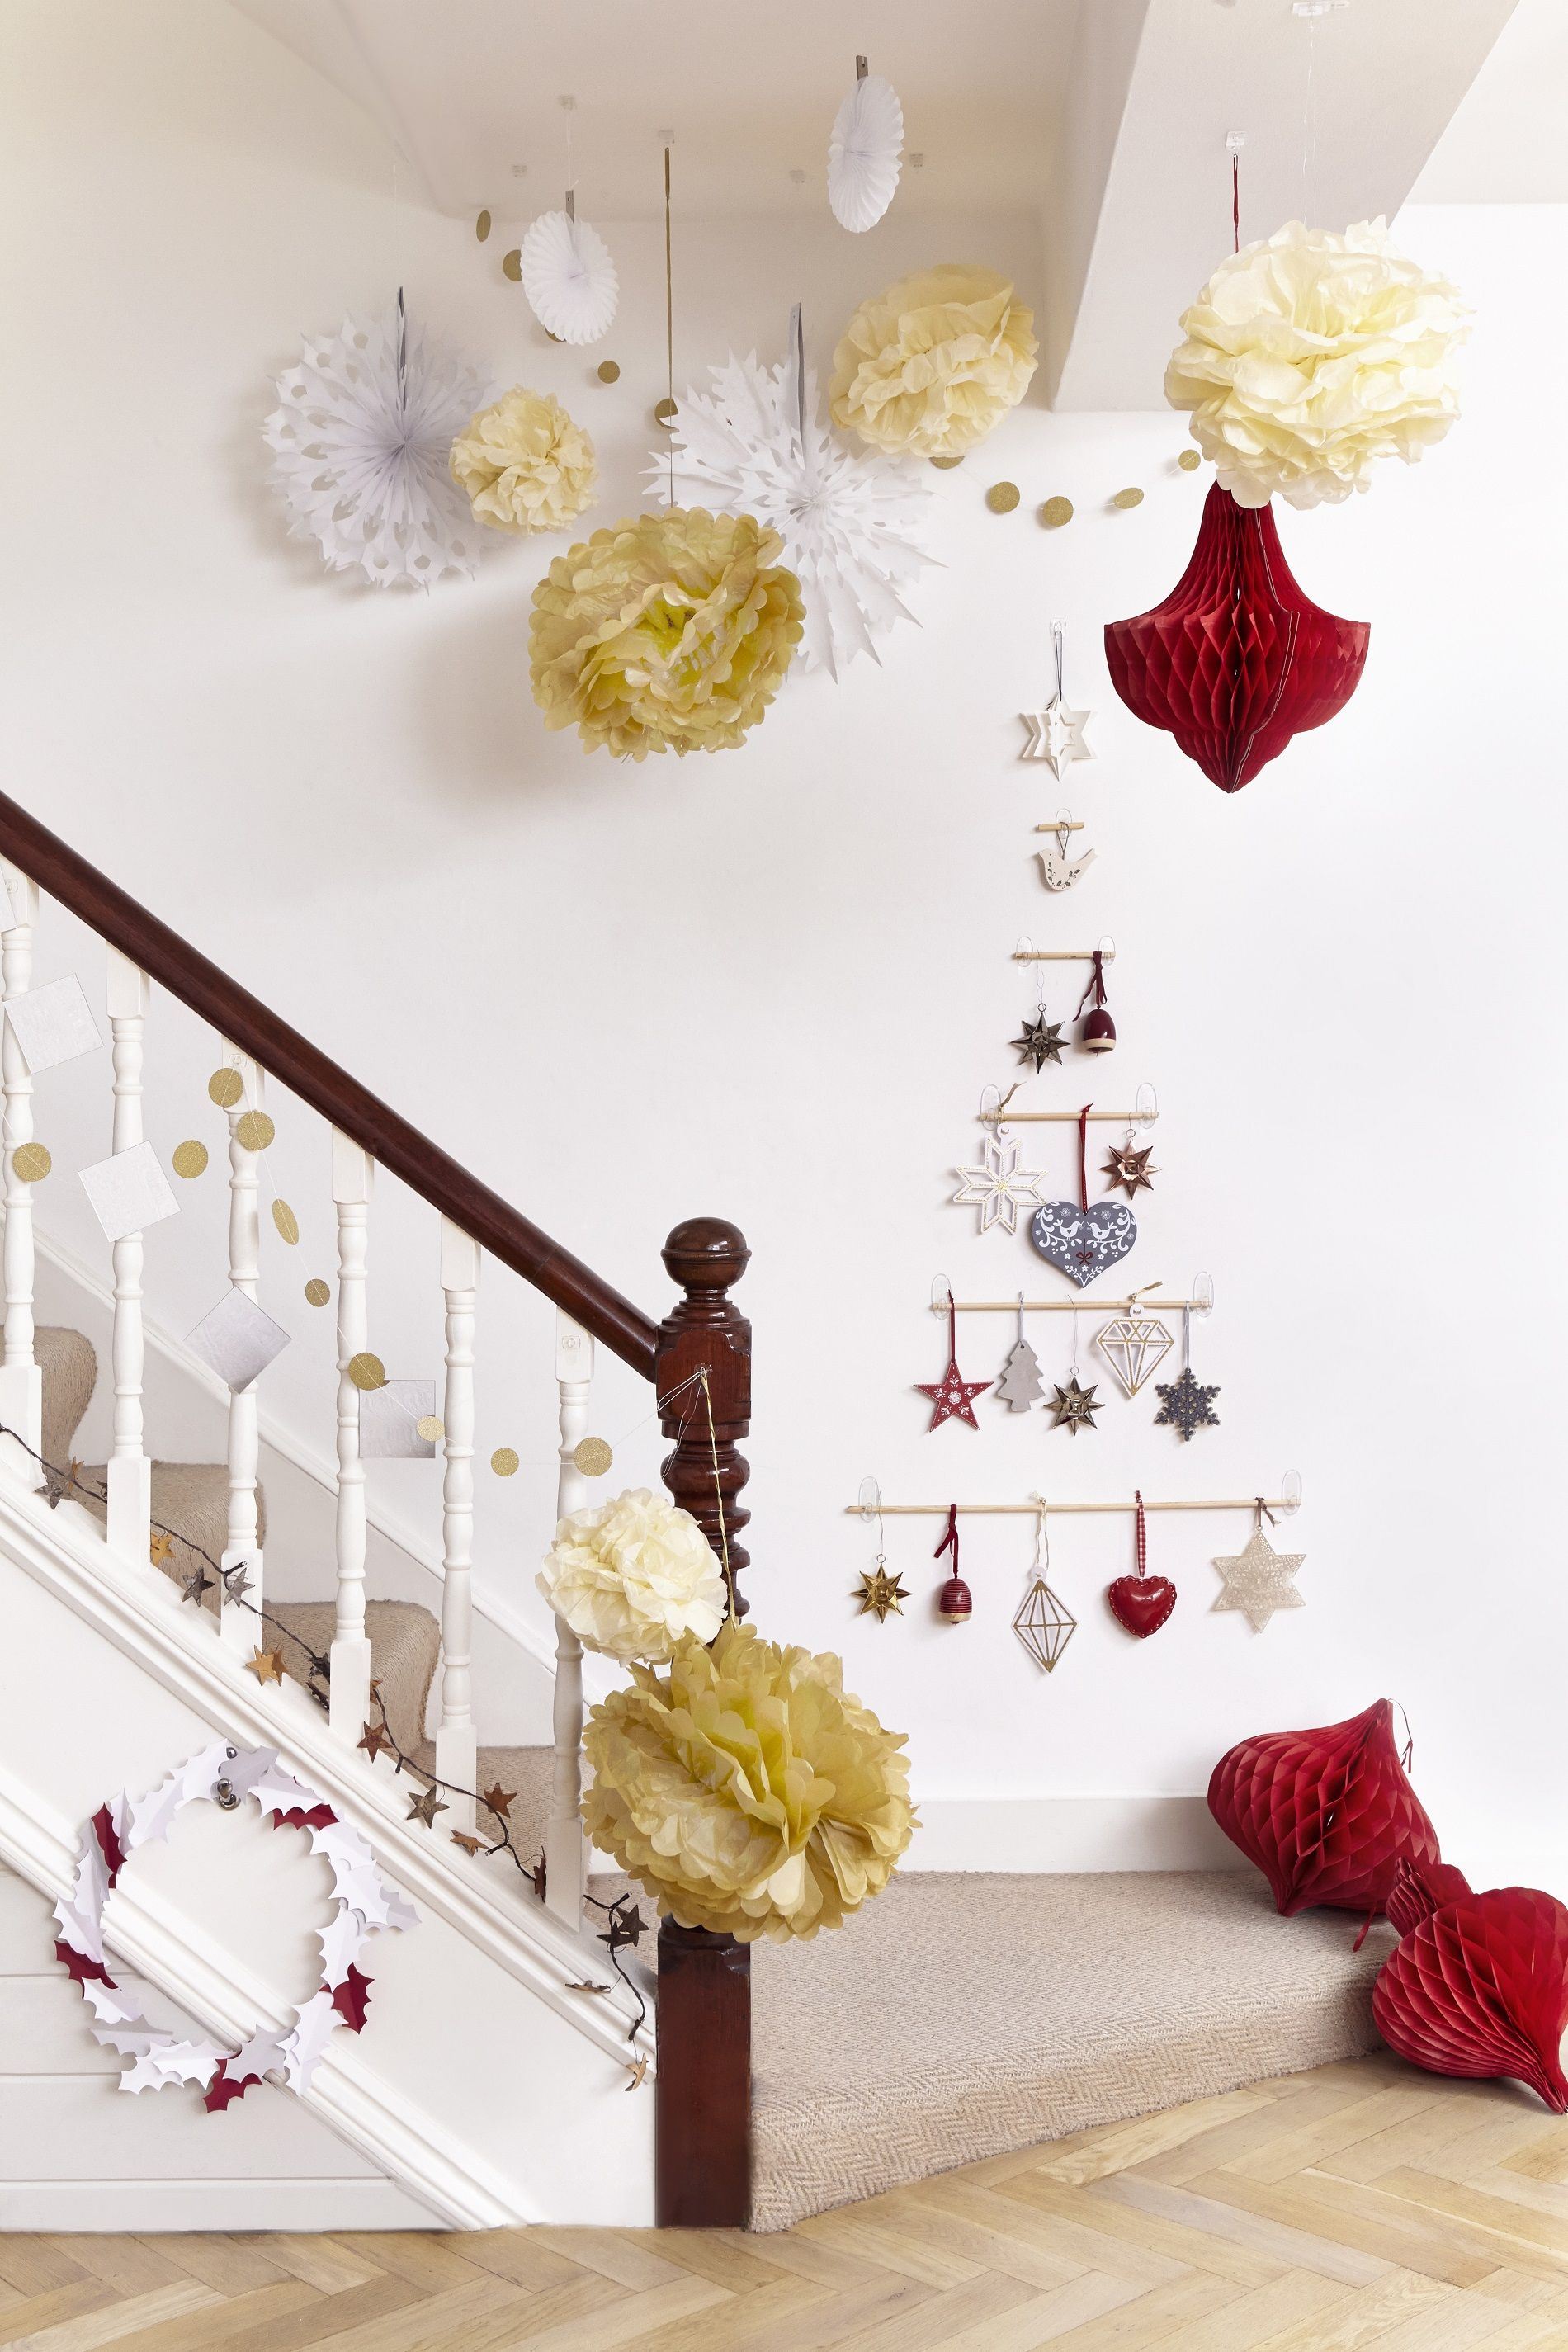 Deck Your Halls With Command This Christmas These Decorations Were All Put Up Using Command Ce Christmas Crafts Decorations Christmas Decorations Decor Crafts